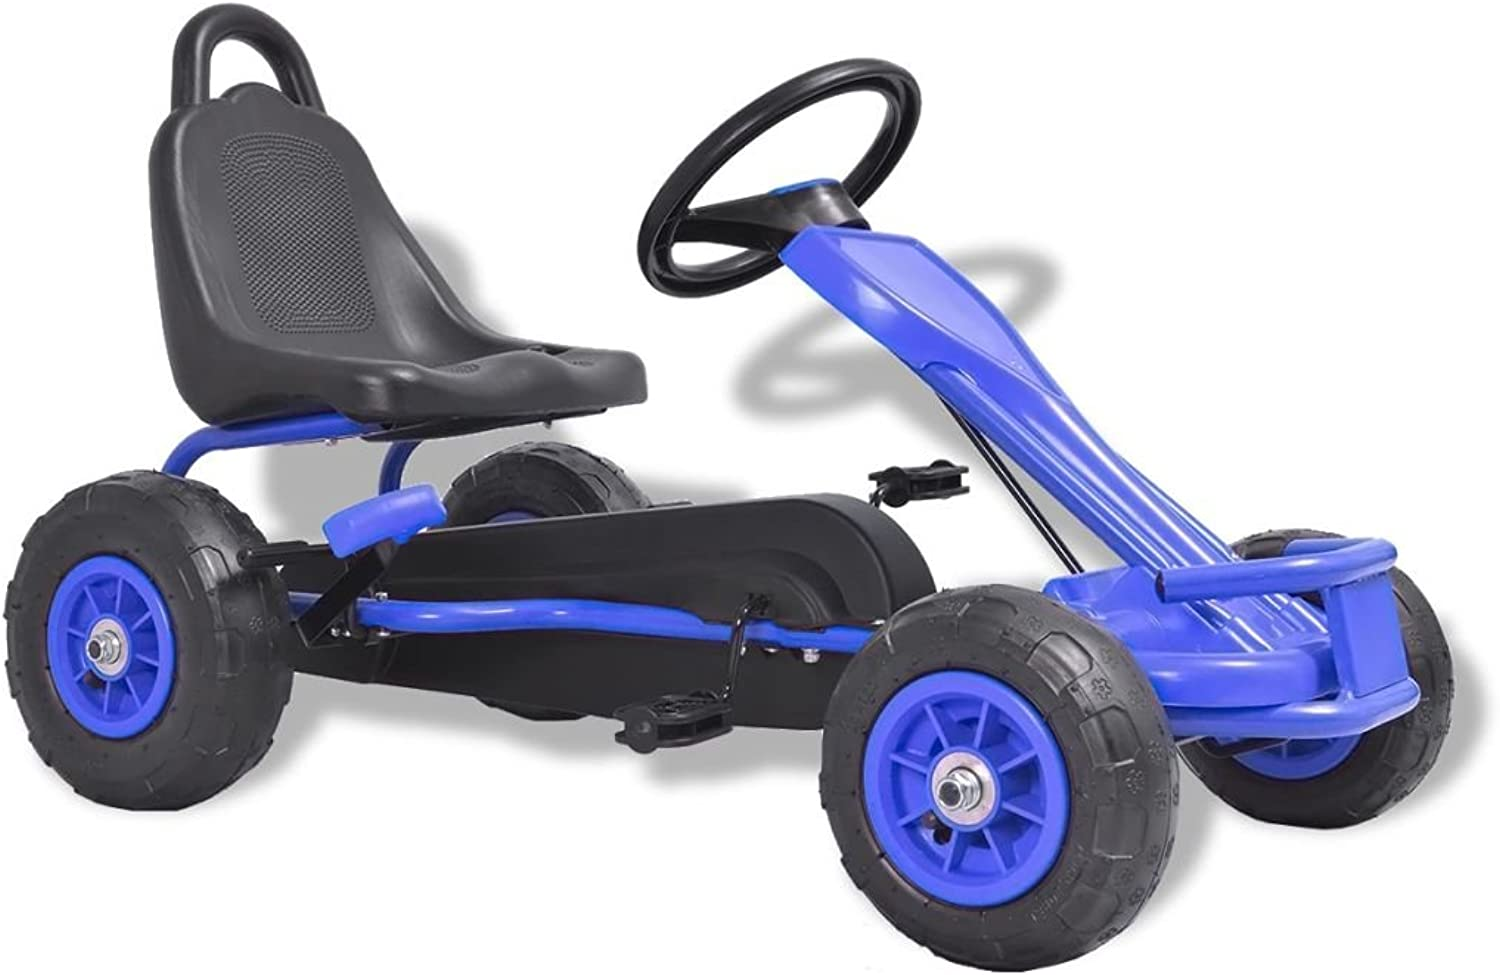 Festnight GoKart bluee and Black 90 x 50 x 51 cm for Kid Pedal 1 seater Outdoor Toy Racing